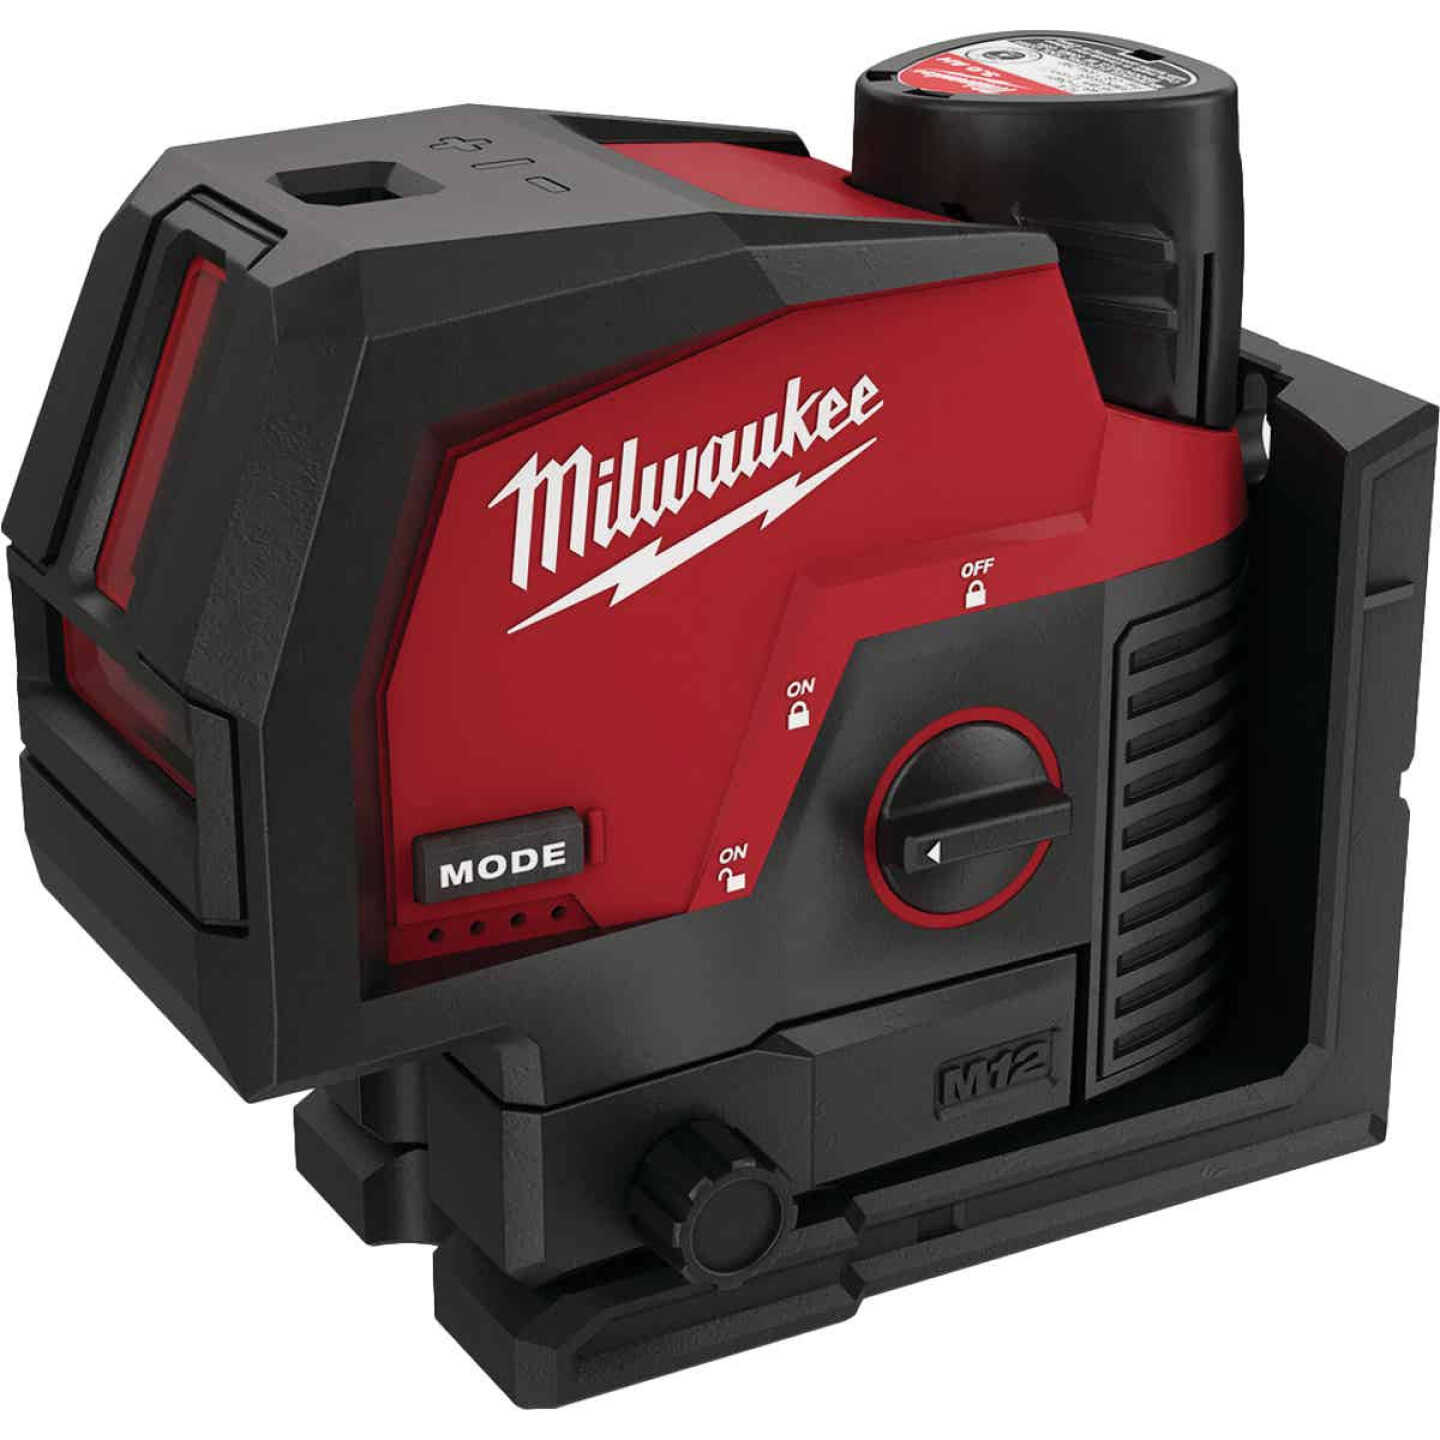 Milwaukee M12 Green Cross Line & Plumb Points Laser Kit with Battery Image 1